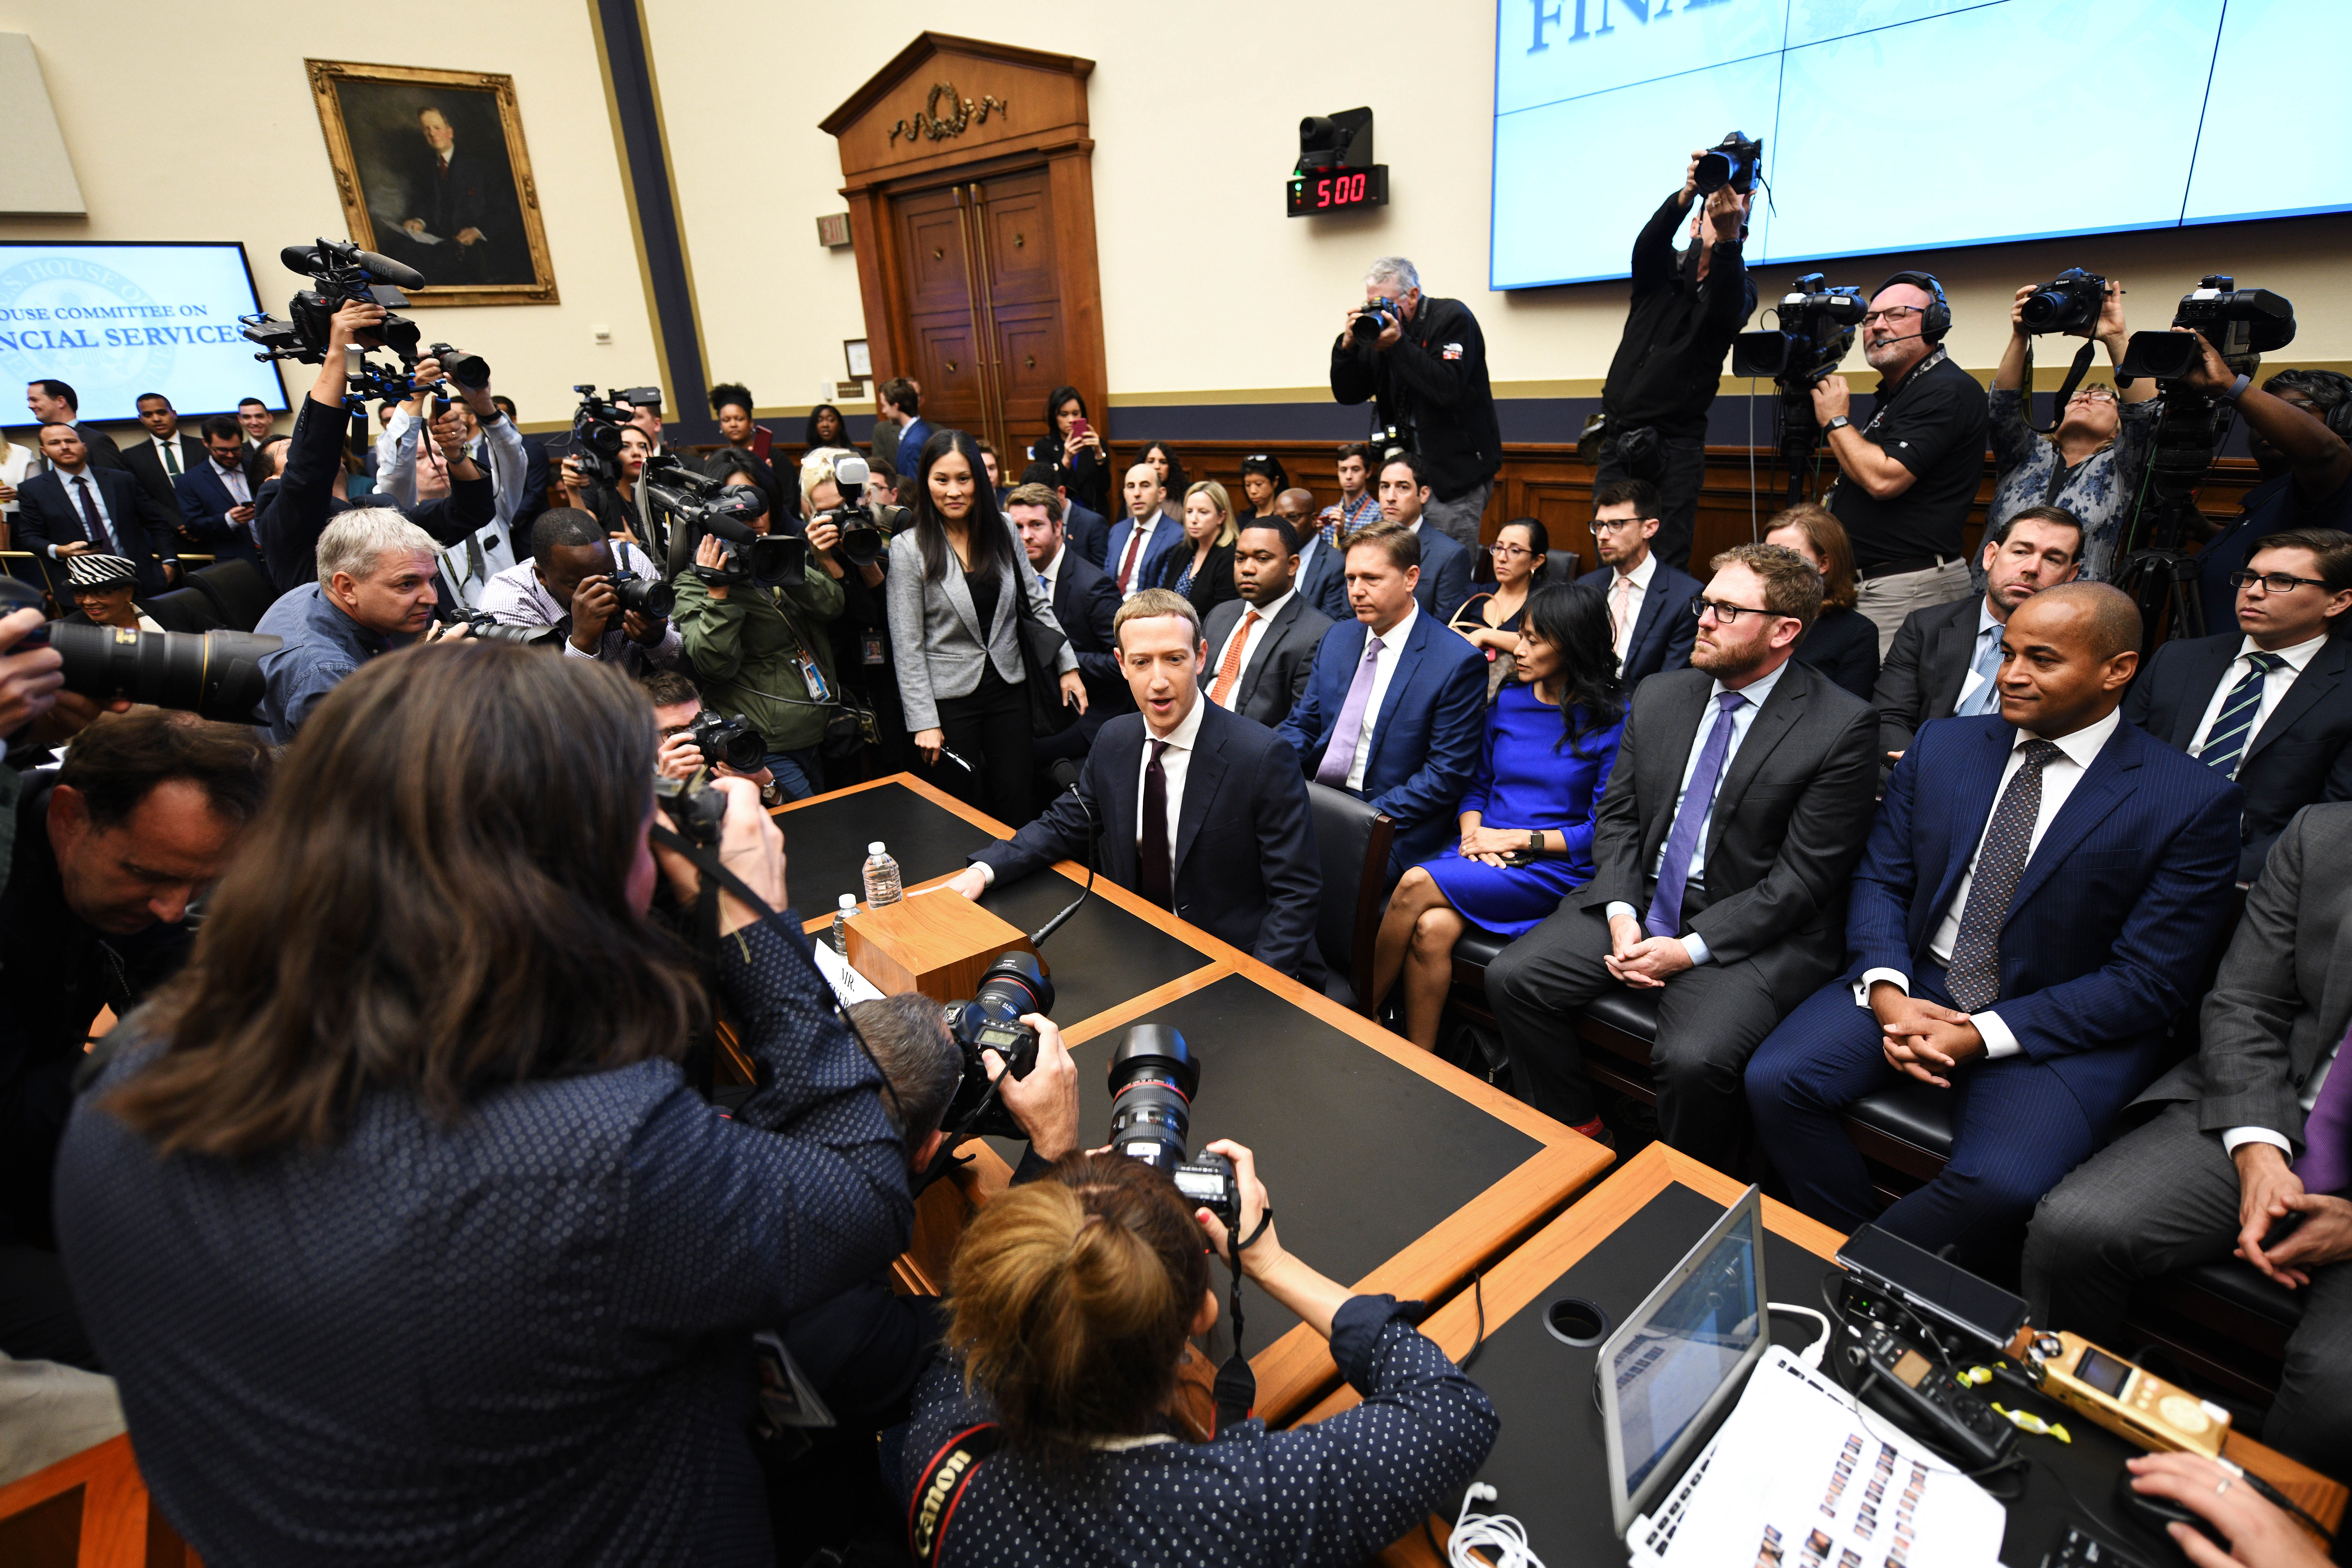 WASHINGTON, Oct. 23, 2019 -- Facebook CEO Mark Zuckerberg C testifies before the U.S. House Financial Services Committee during An Examination of Facebook and Its Impact on the Financial Services and Housing Sectors hearing on Capitol Hill in Washington D.C., the United States, on Oct. 23, 2019. (Photo by Liu Jie/Xinhua via Getty) (Xinhua/Liu Jie via Getty Images)